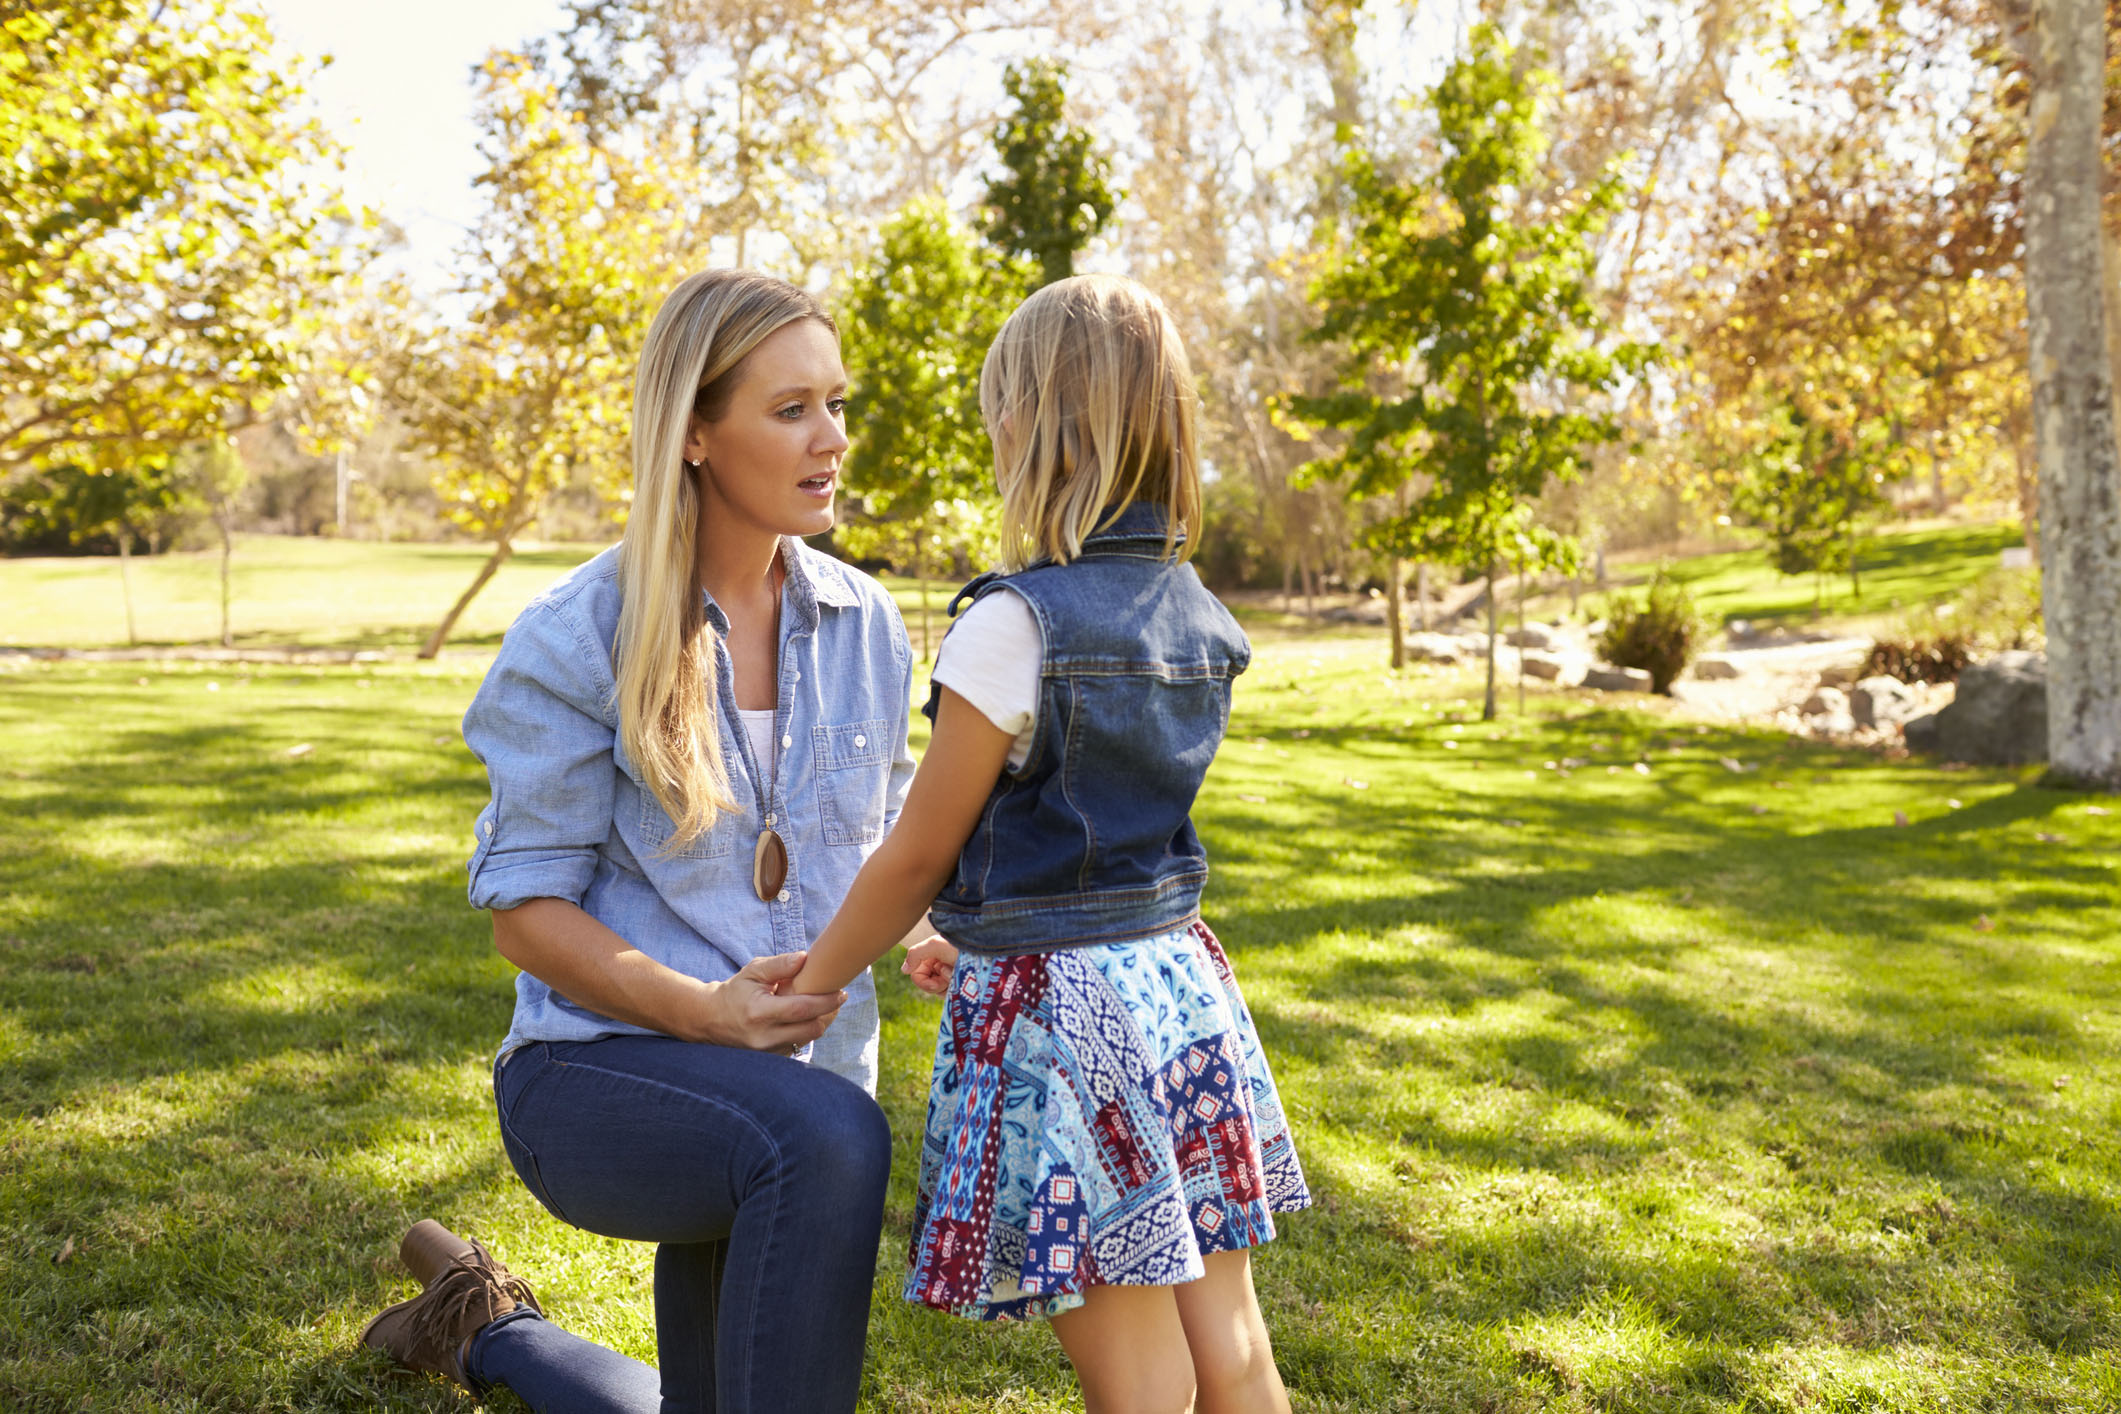 Supportive parenting can reduce child's anxiety